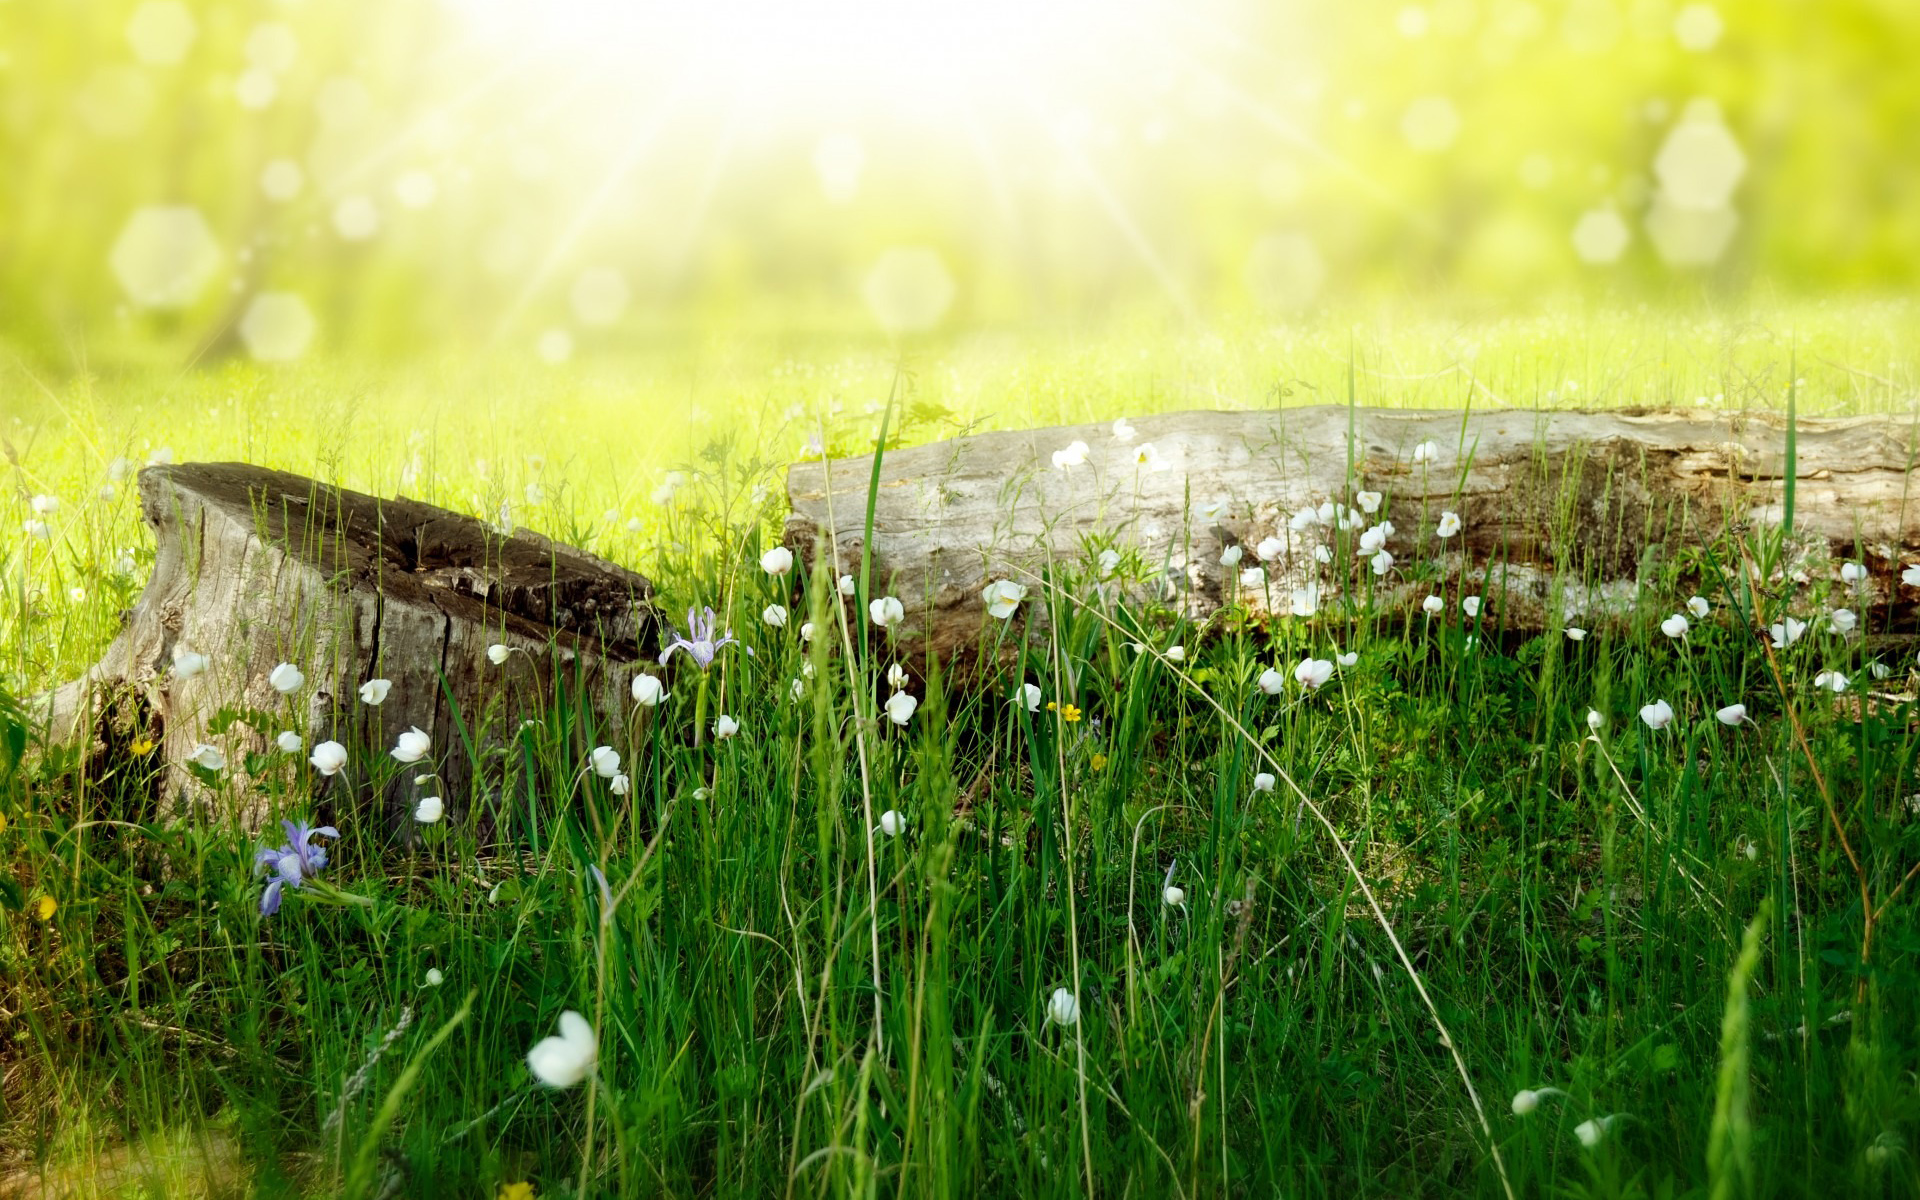 Summer Meadow Nature Wood Hd Wallpaper Image